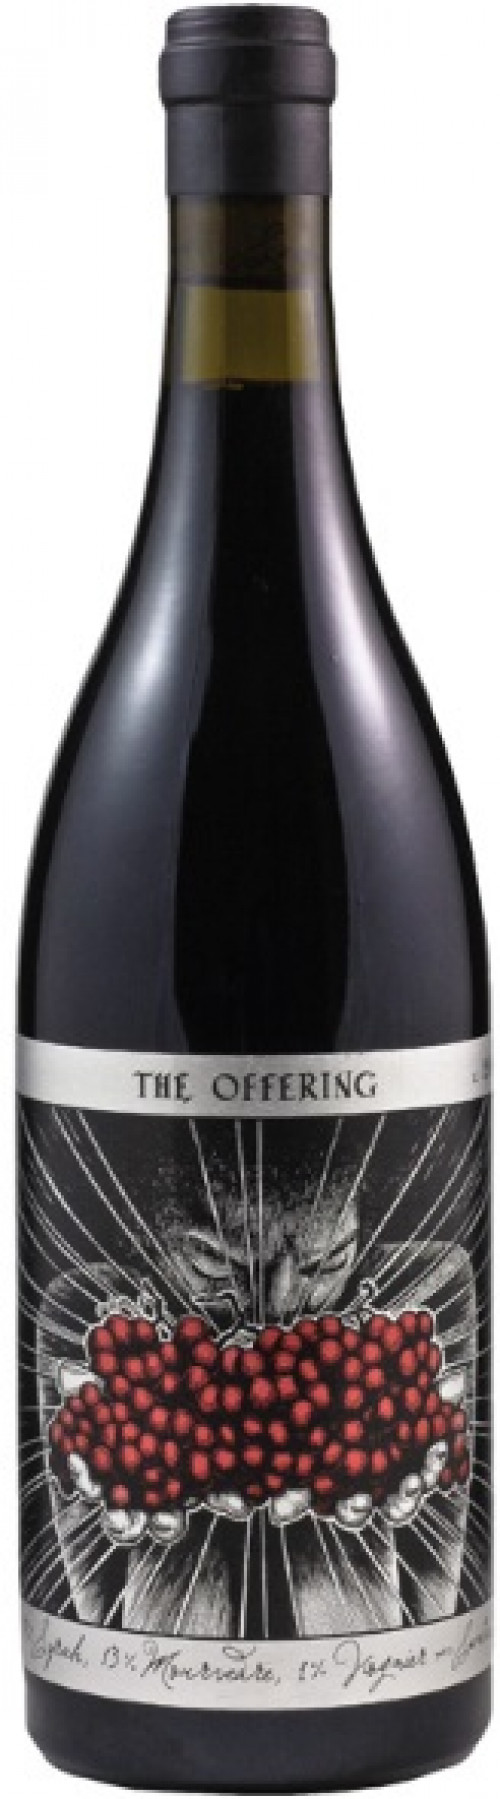 2016 Sans Liege The Offering Red 750ml